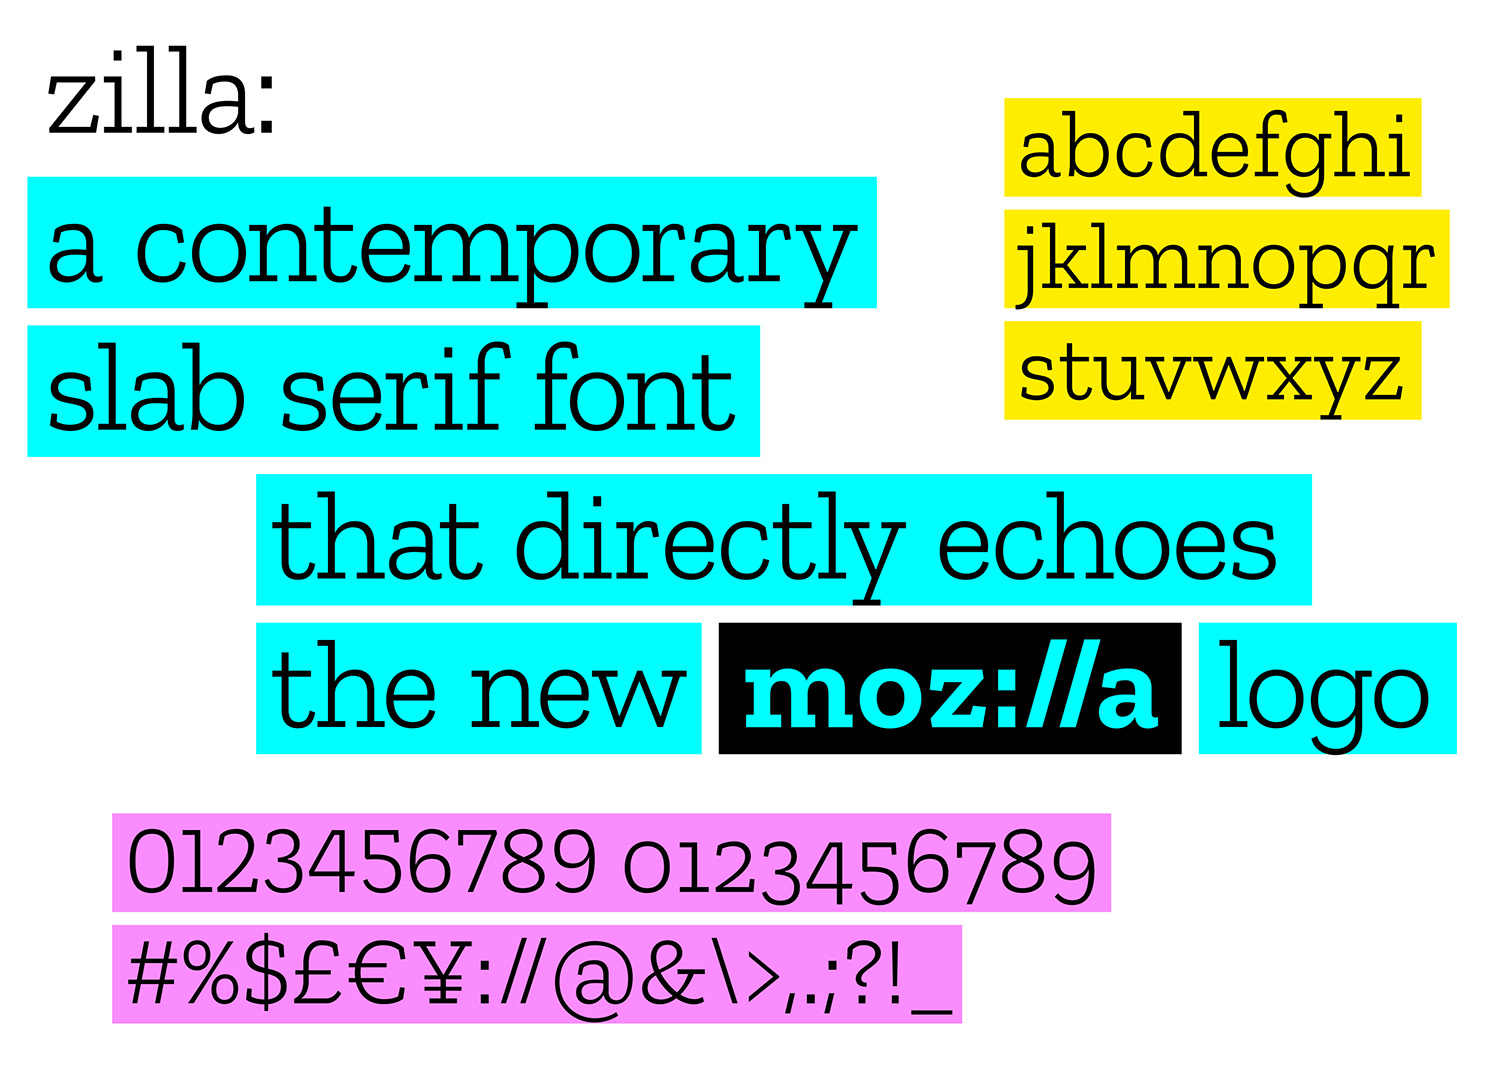 johnsonbanks_Mozilla_zilla_type_2